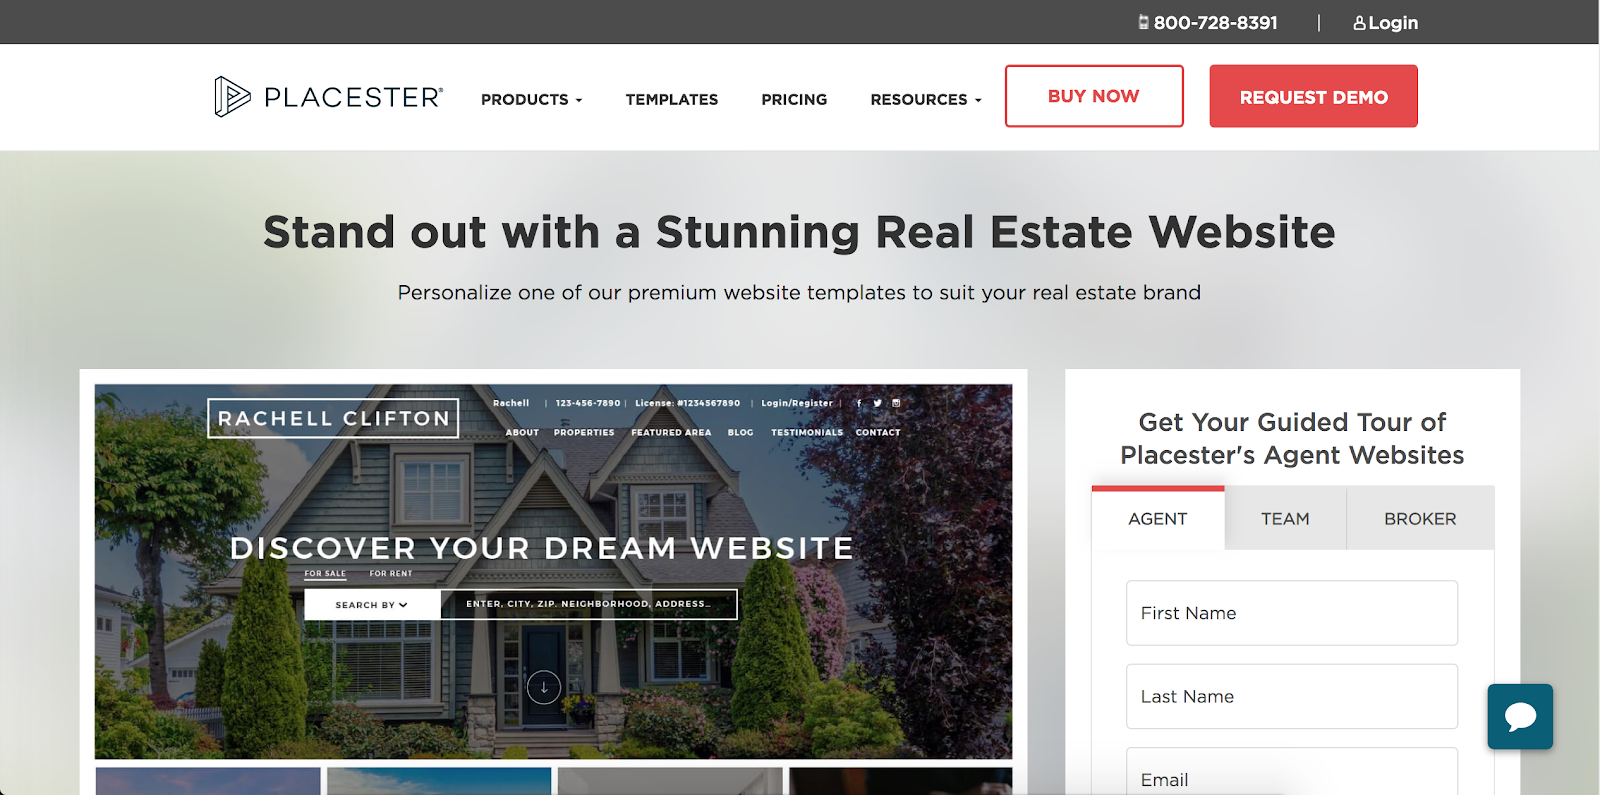 Placester Real Estate Website Builder | Real Estate Marketing Tools